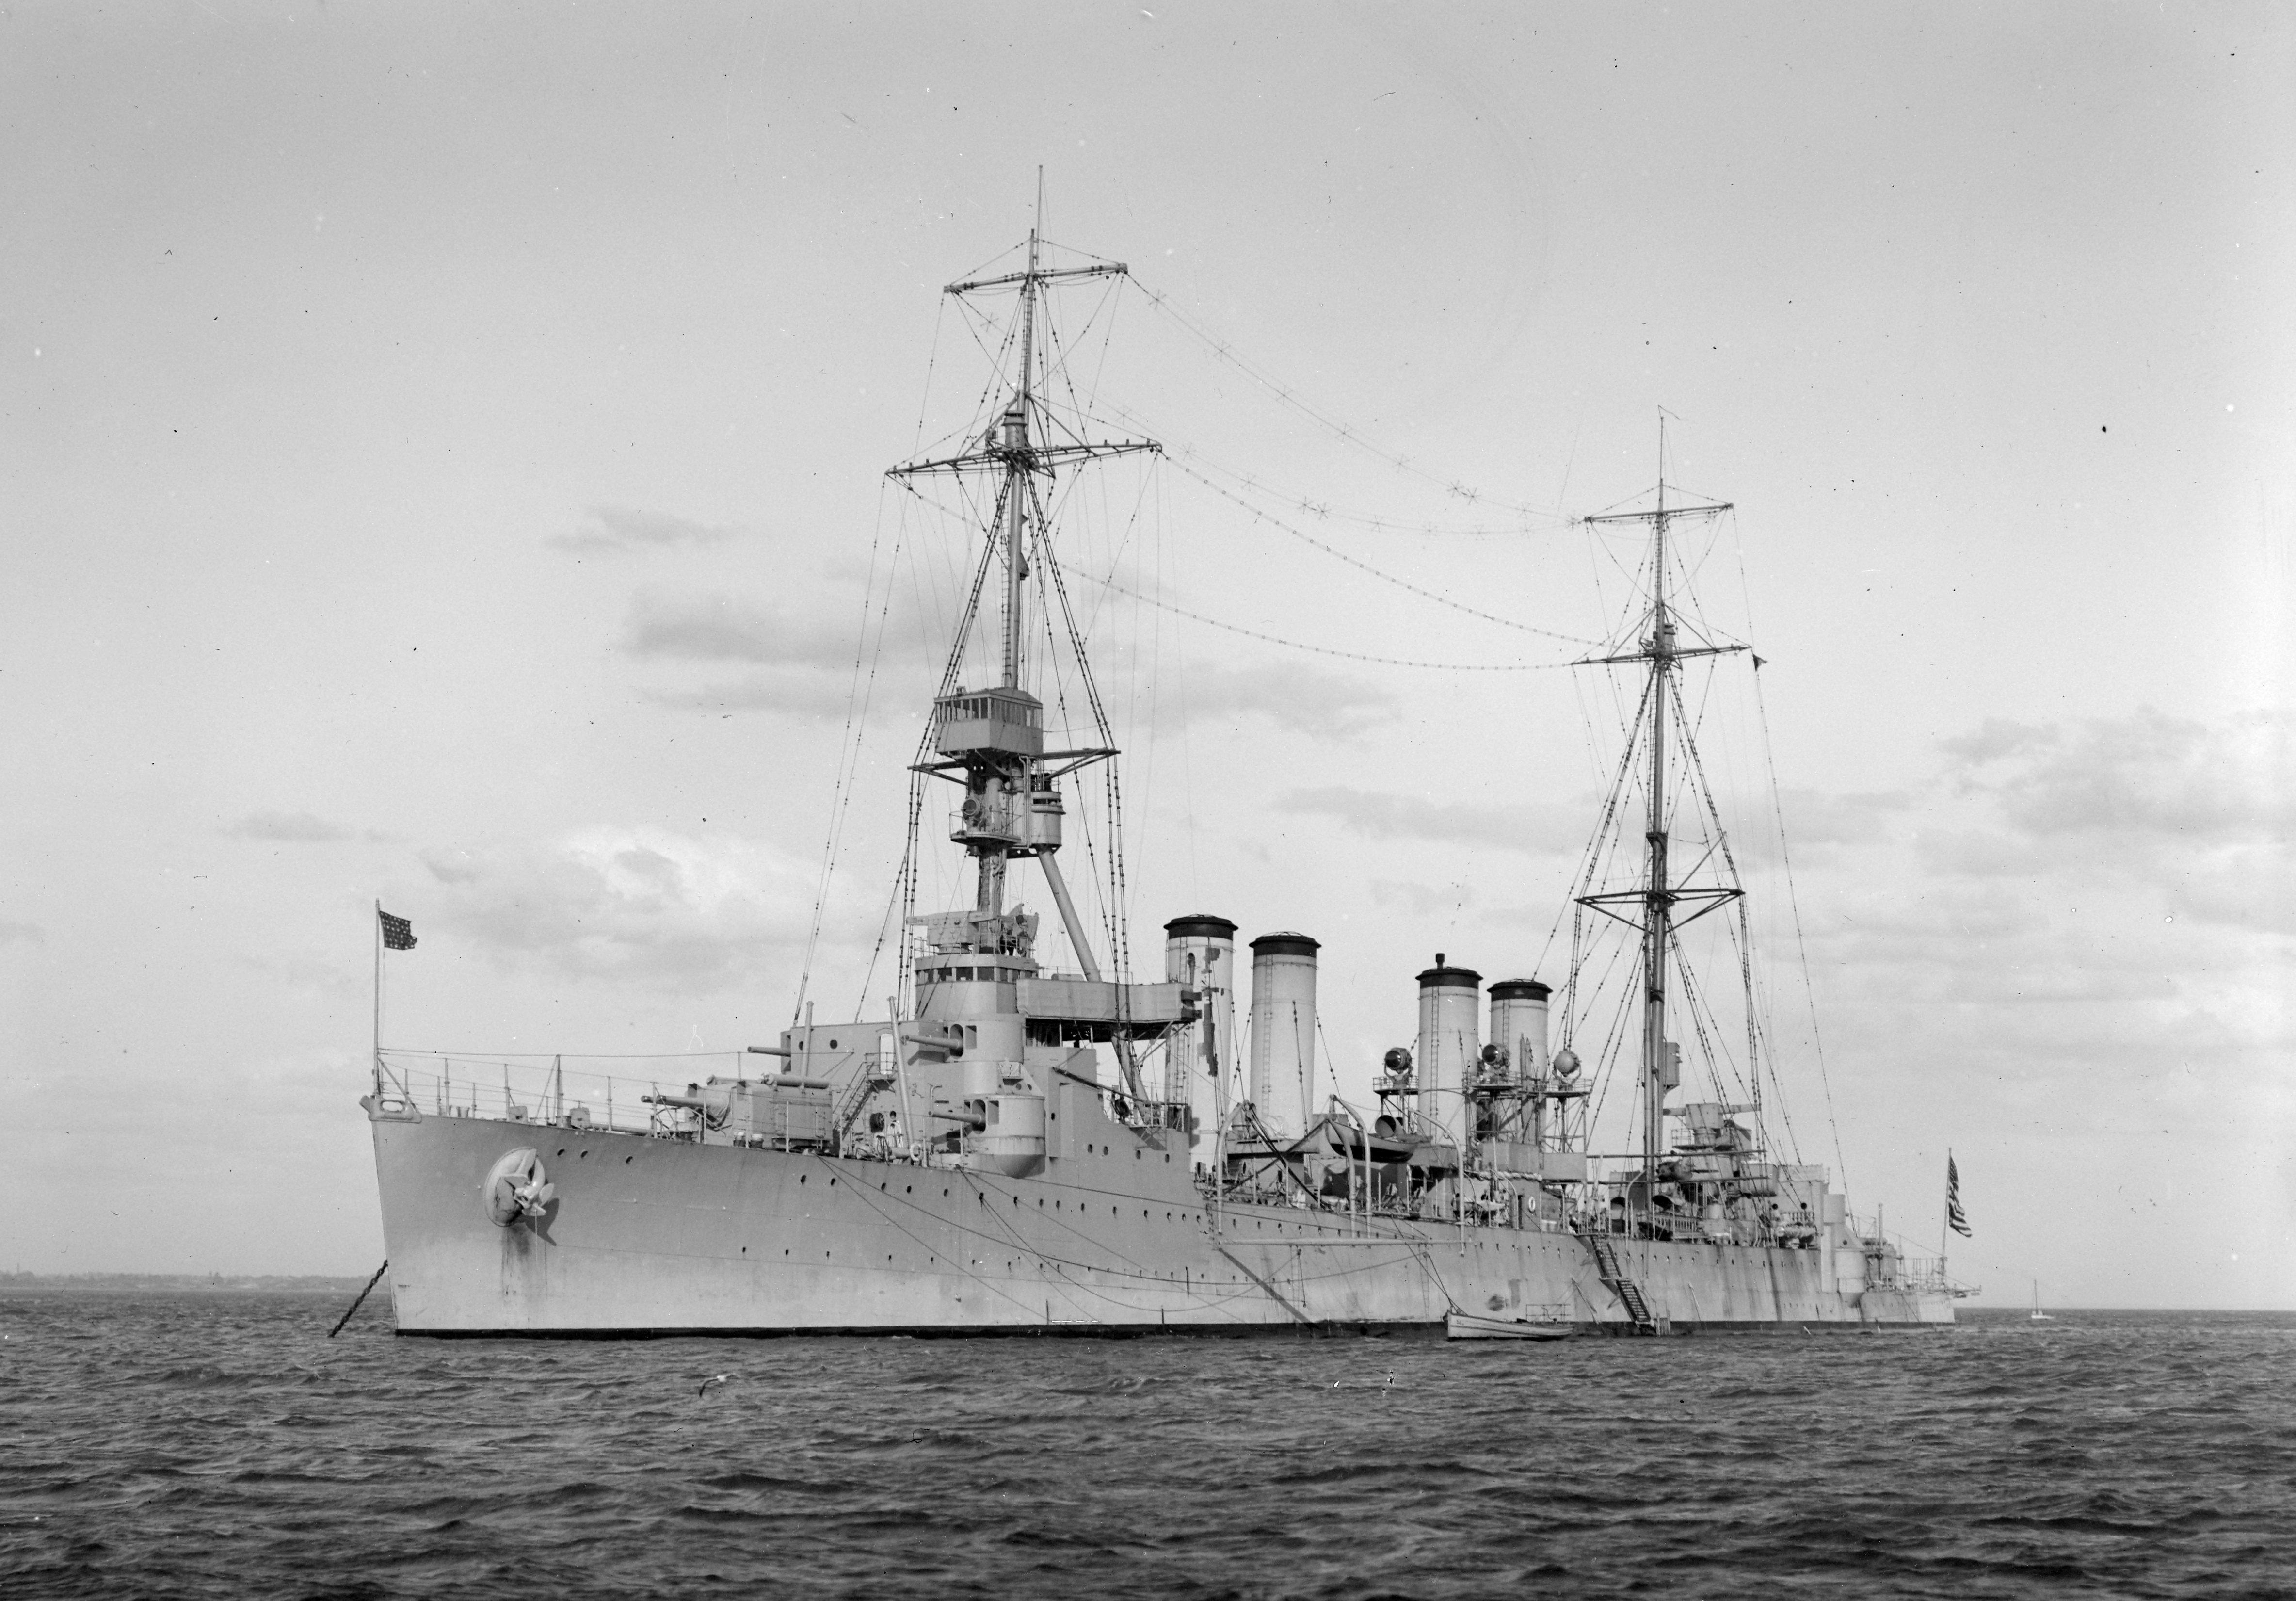 The U.S. Navy light cruiser USS Memphis (CL-13) at anchor in Australian waters. The photo was probably taken during Memphis' South Pacific cruise in June 1925.